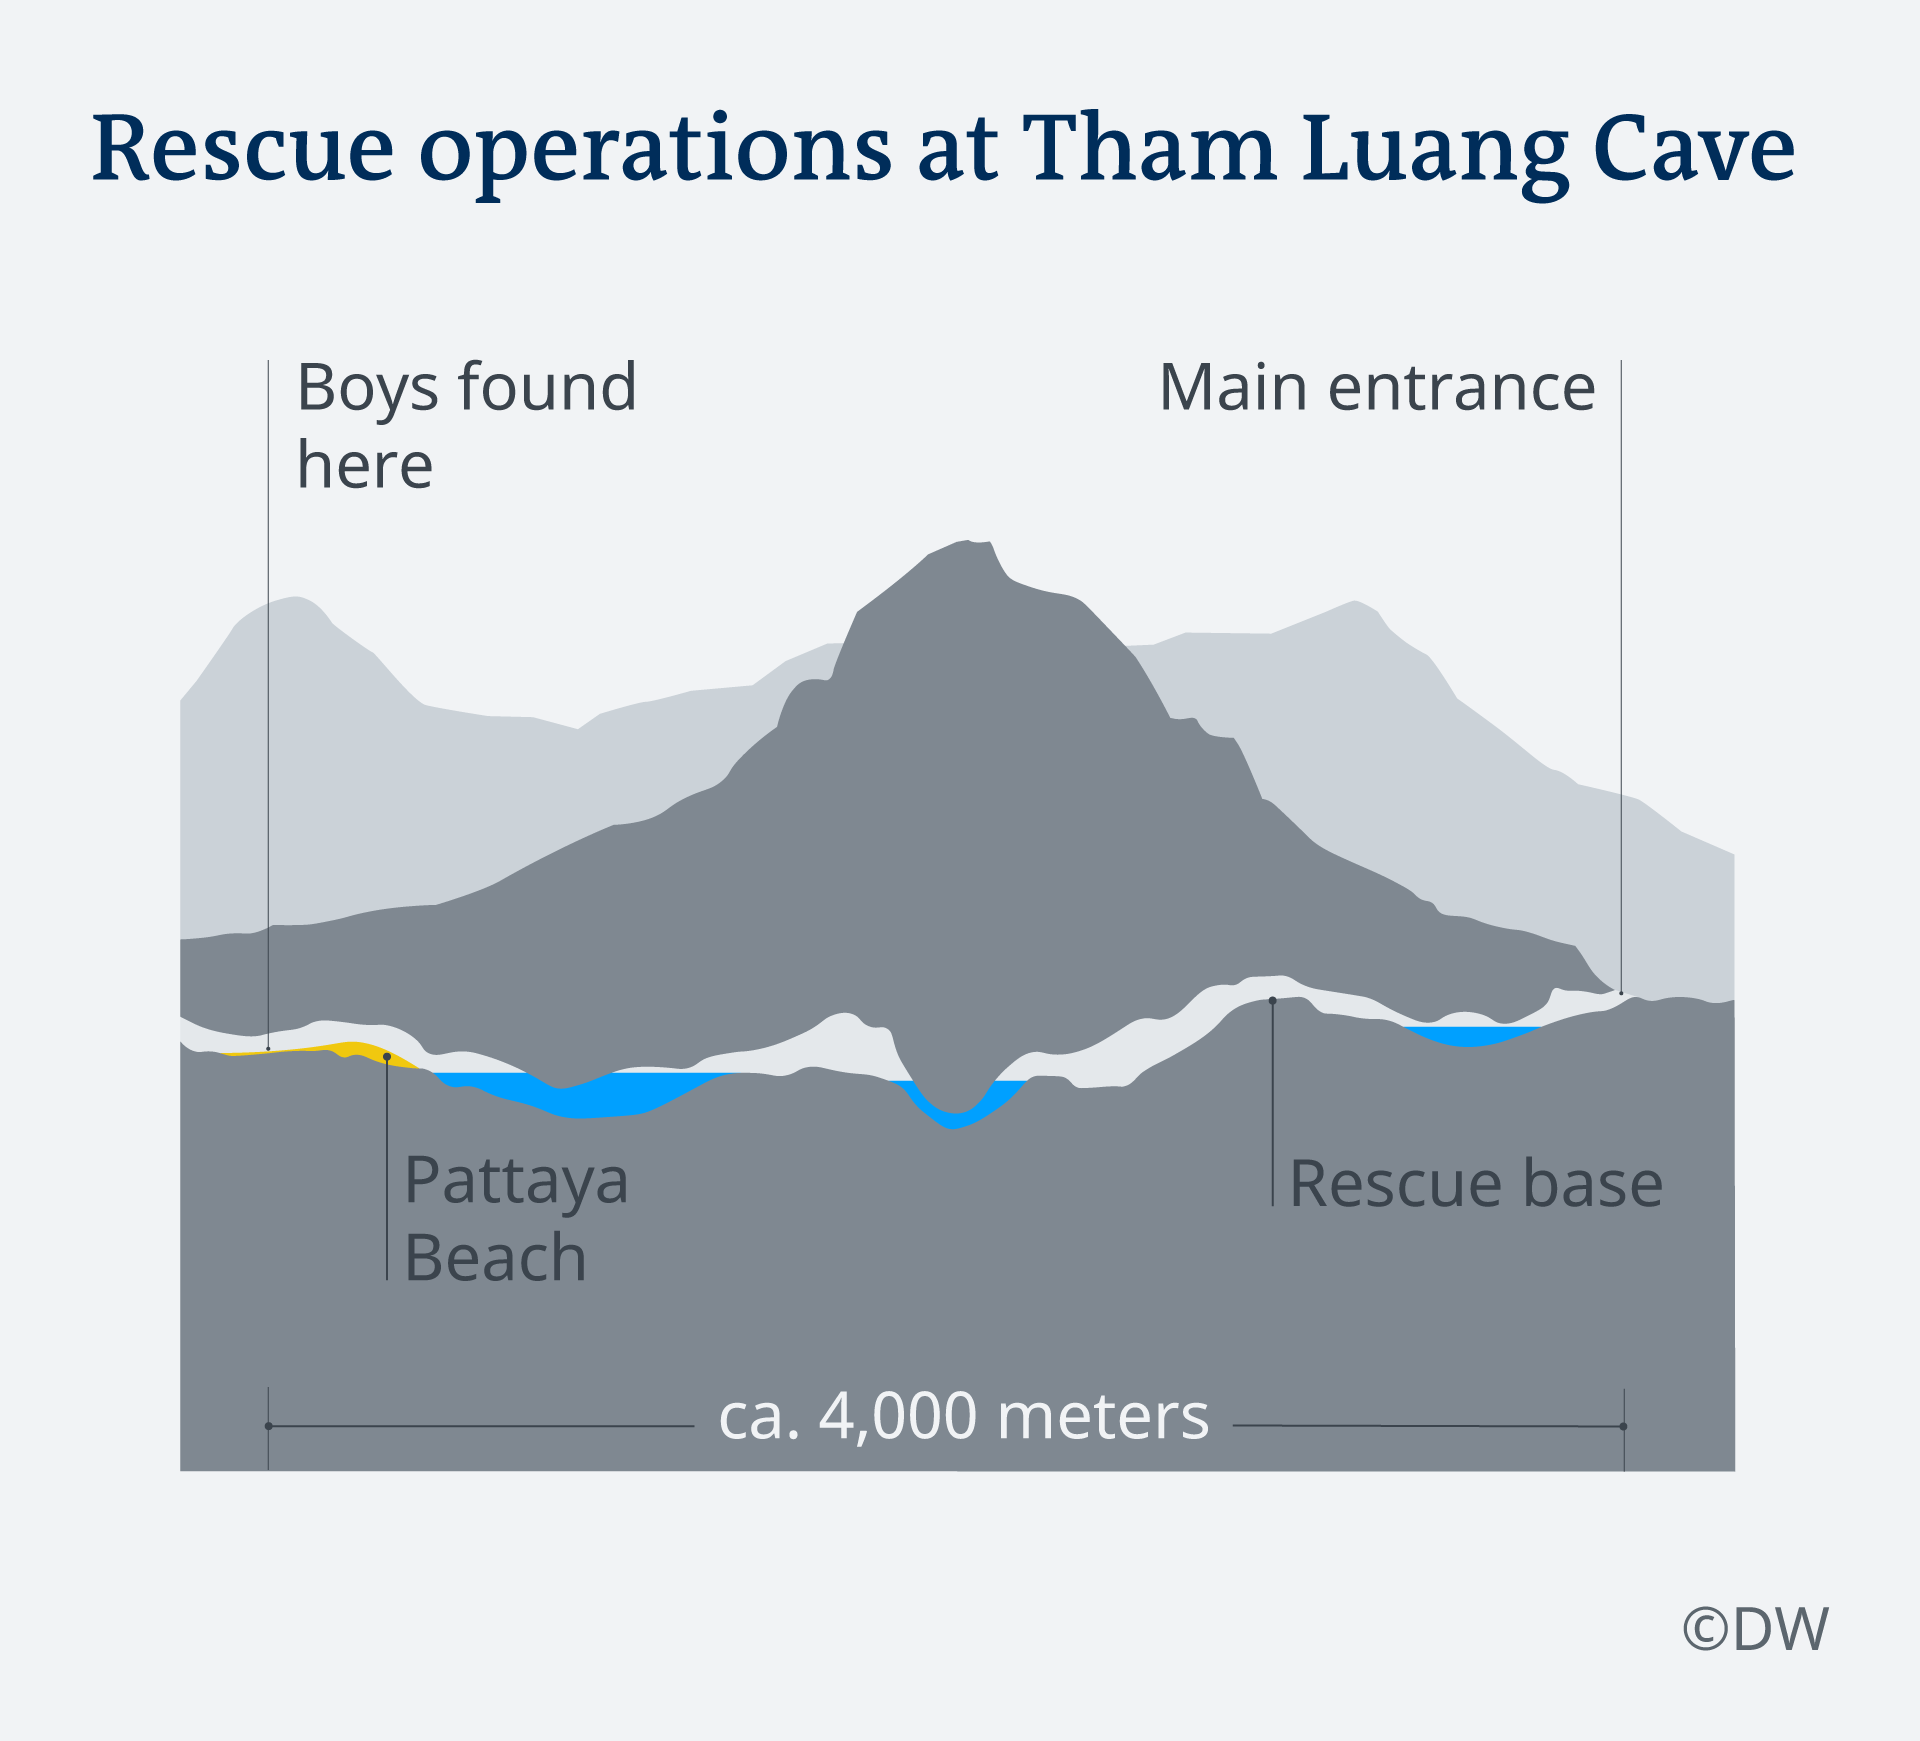 A visual of the recue operations at the Tham Luang Cave